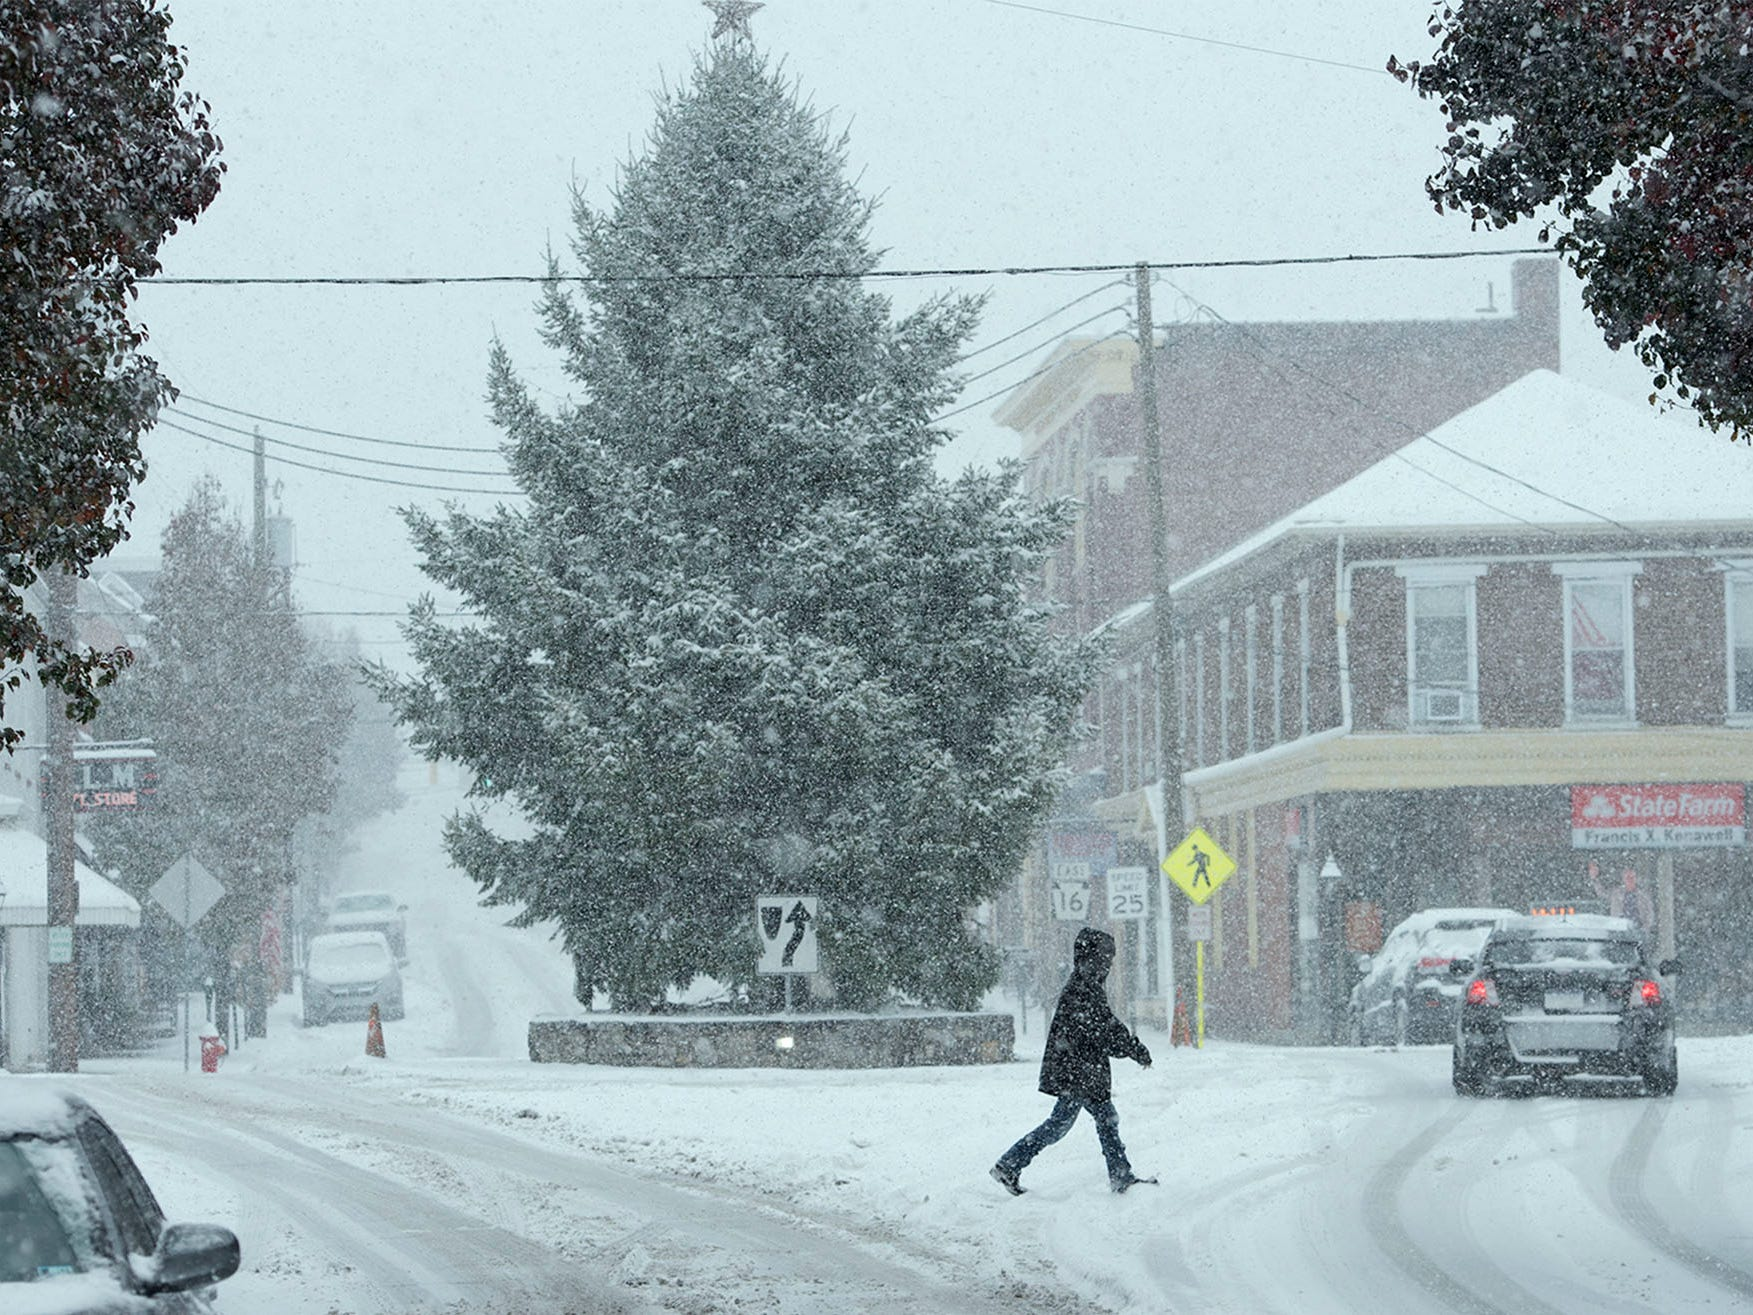 A pedestrian crosses the street in front of the Greencastle Christmas tree. Snow started in Franklin County on Thursday morning, November 15, 2018.